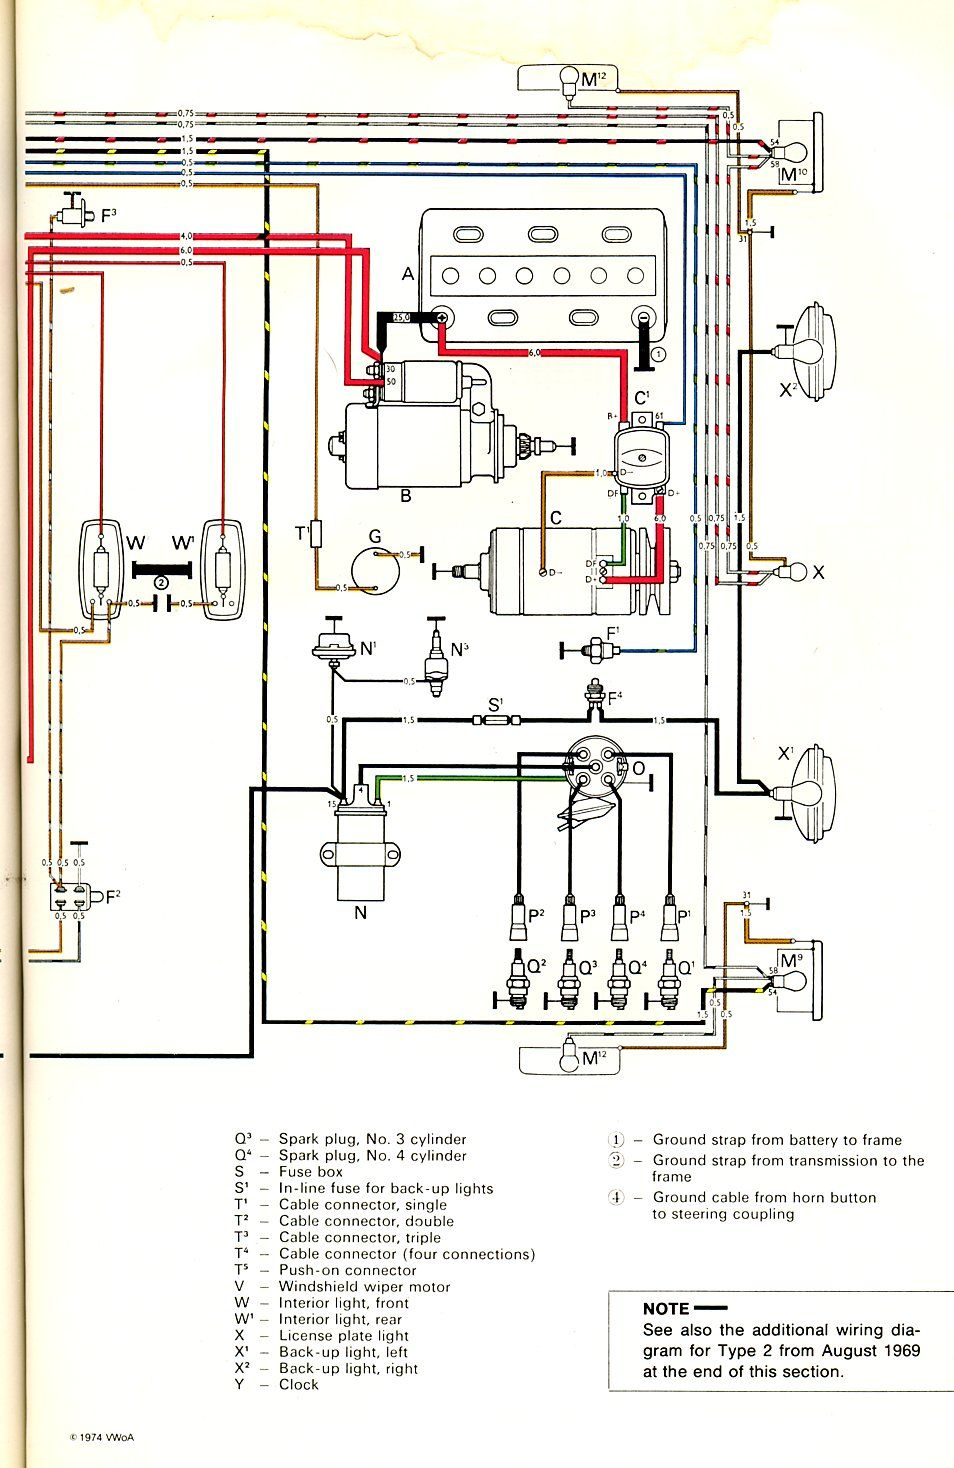 Electrical Wiring Drawing Vw Links In 2018 Pinterest Hvac Reading